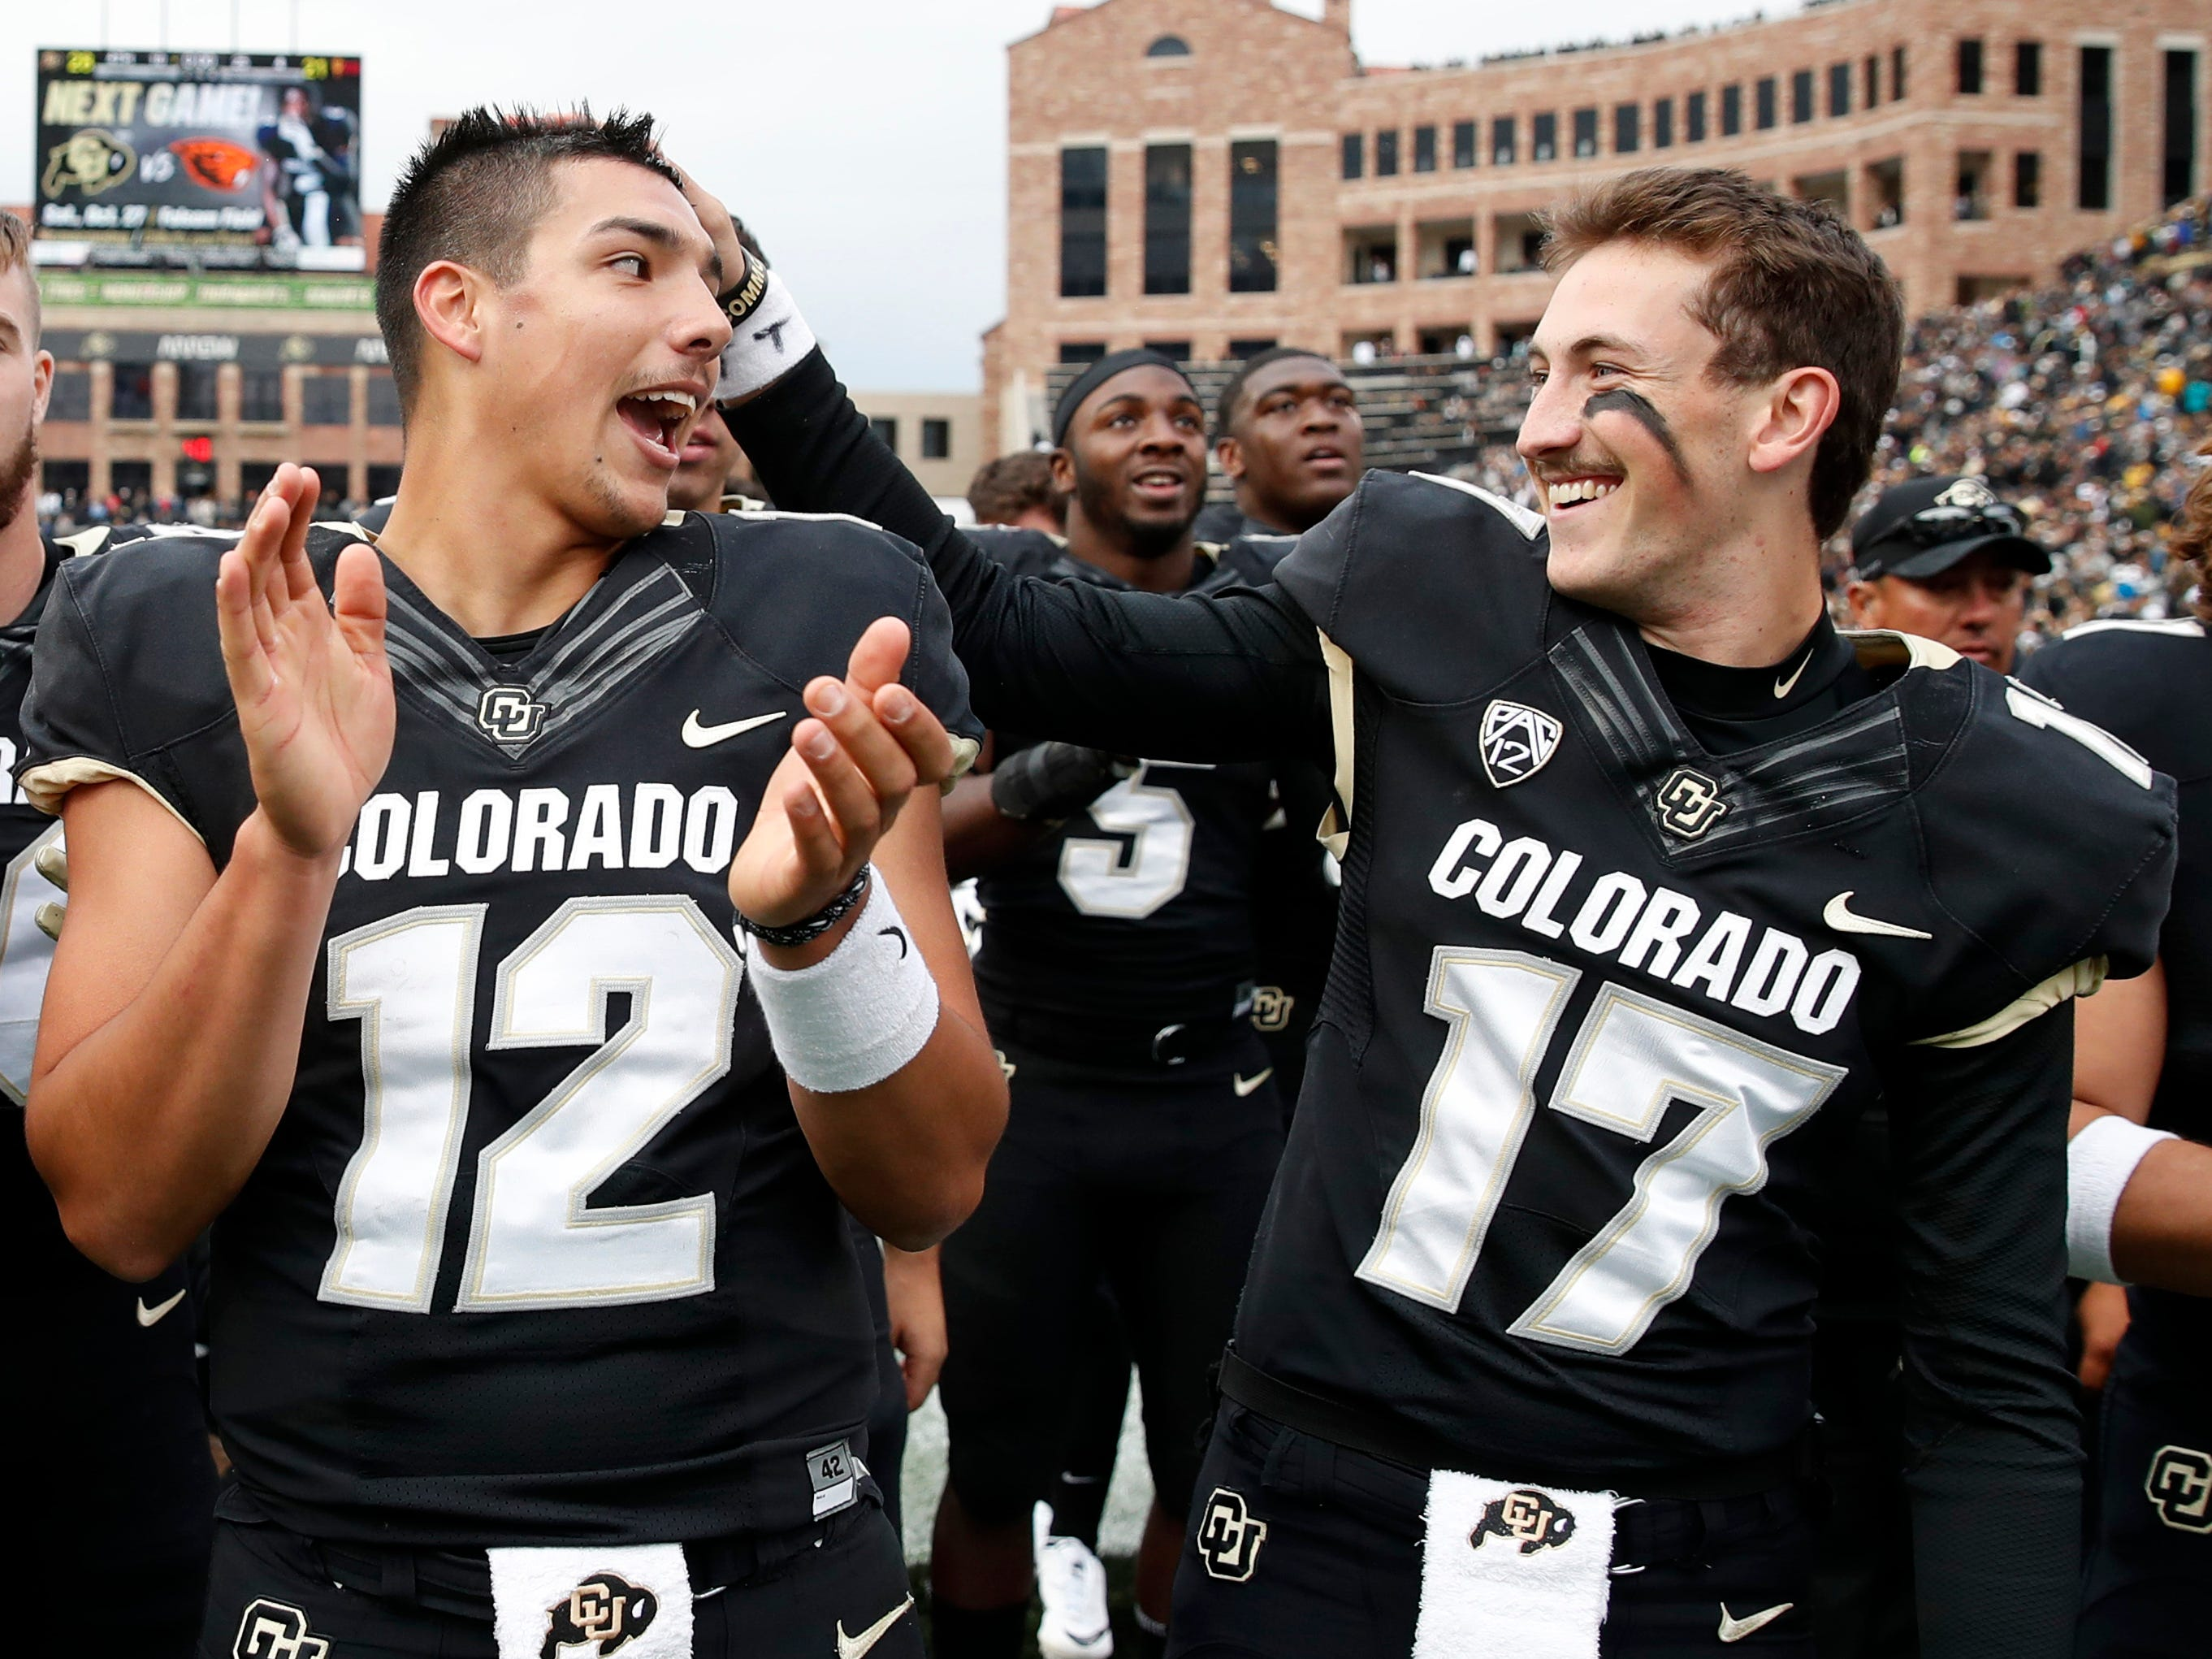 Colorado quarterback Steven Montez, left, jokes with quarterback Josh Goldin as they sing the school song after the second half of an NCAA college football game against Arizona State Saturday, Oct. 6, 2018, in Boulder, Colo. Colorado won 28-21. (AP Photo/David Zalubowski)